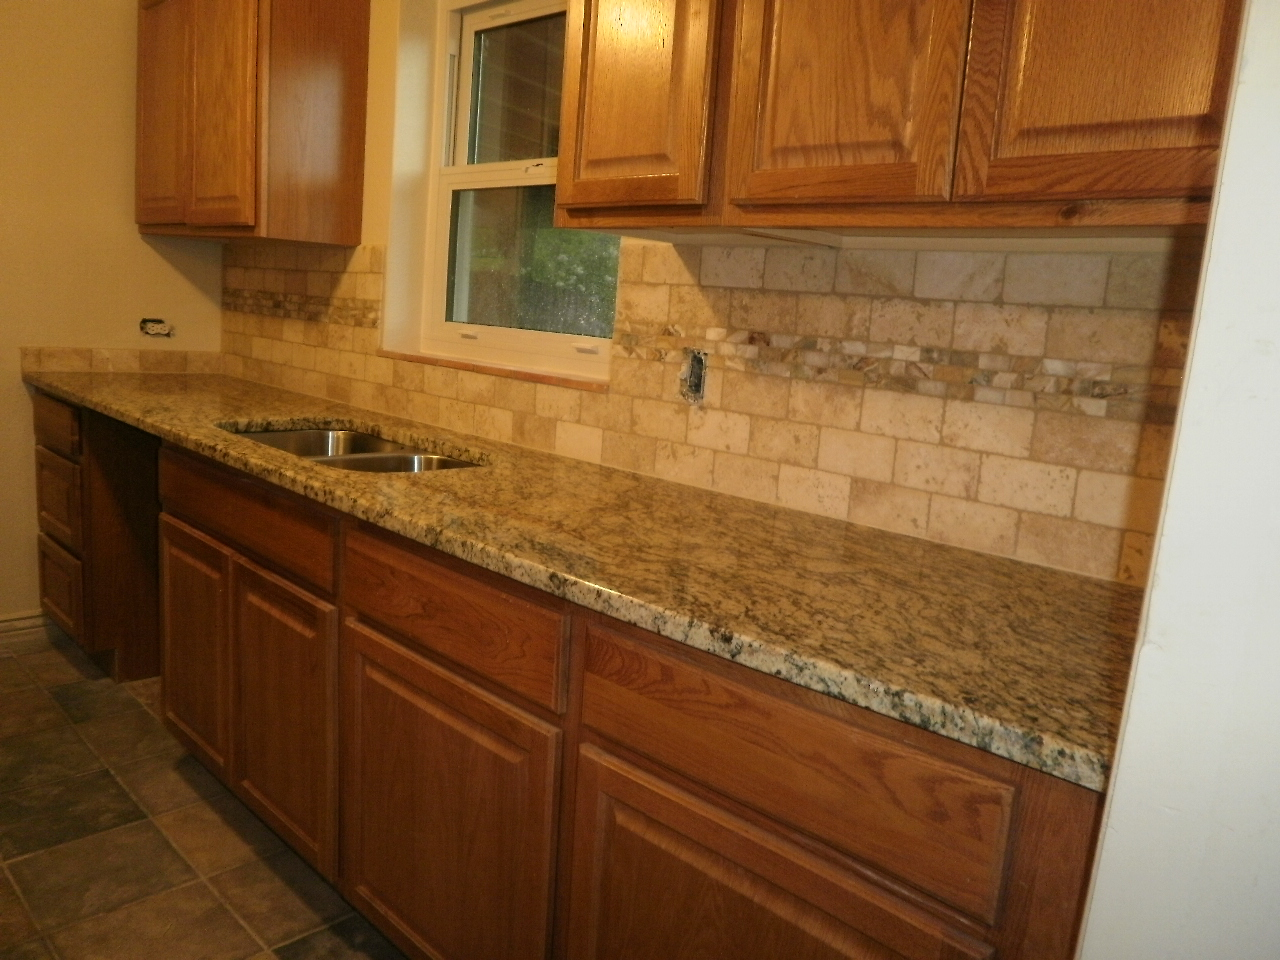 Santa cecilia granite backsplash ideas for Kitchen backsplash ideas